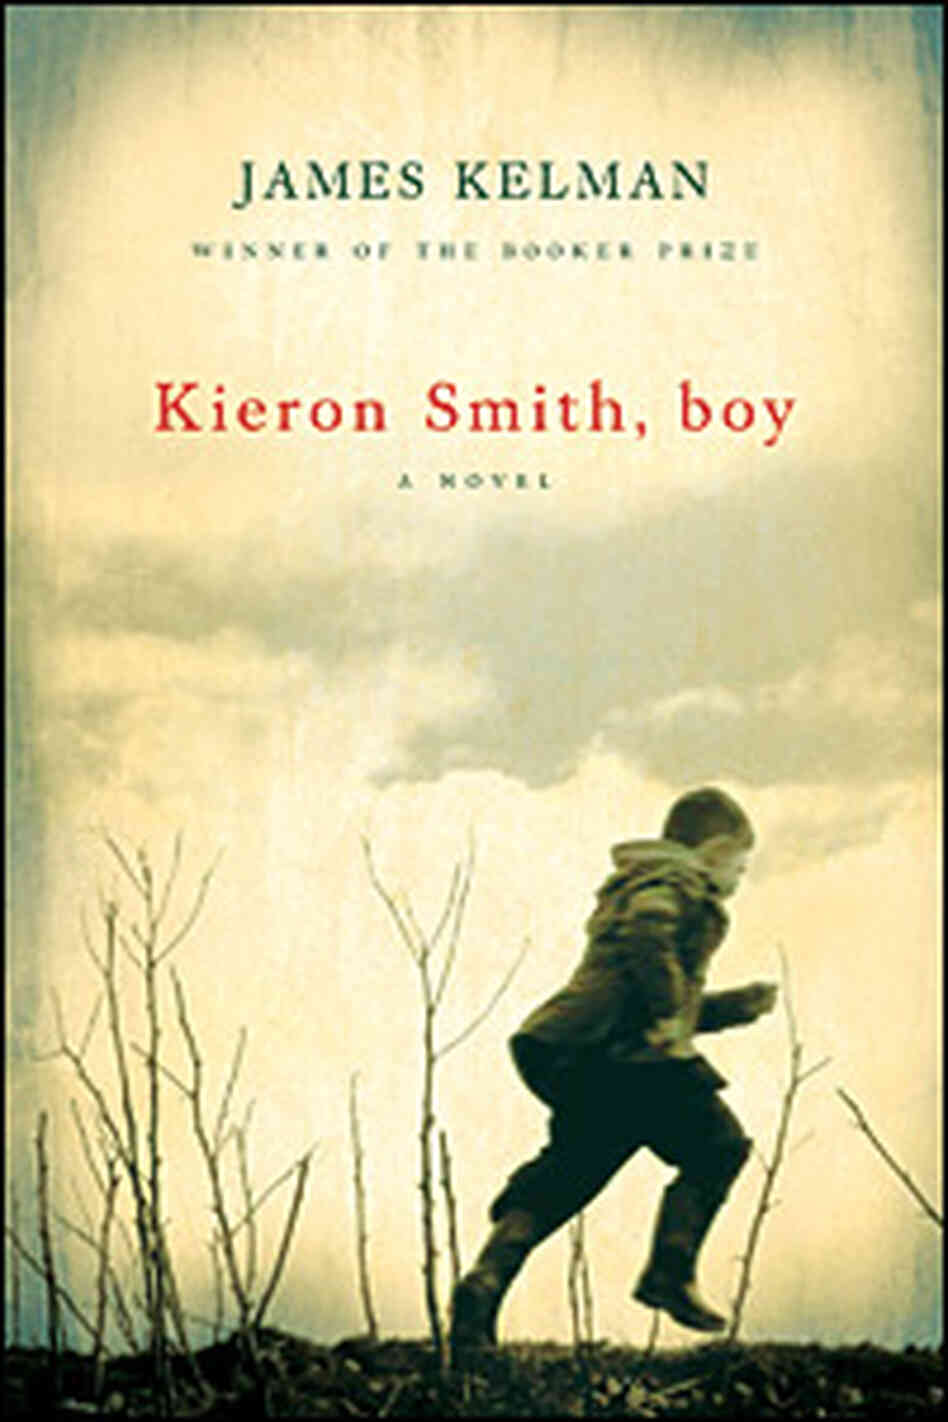 James Kelman's 'Kieron Smith, boy'